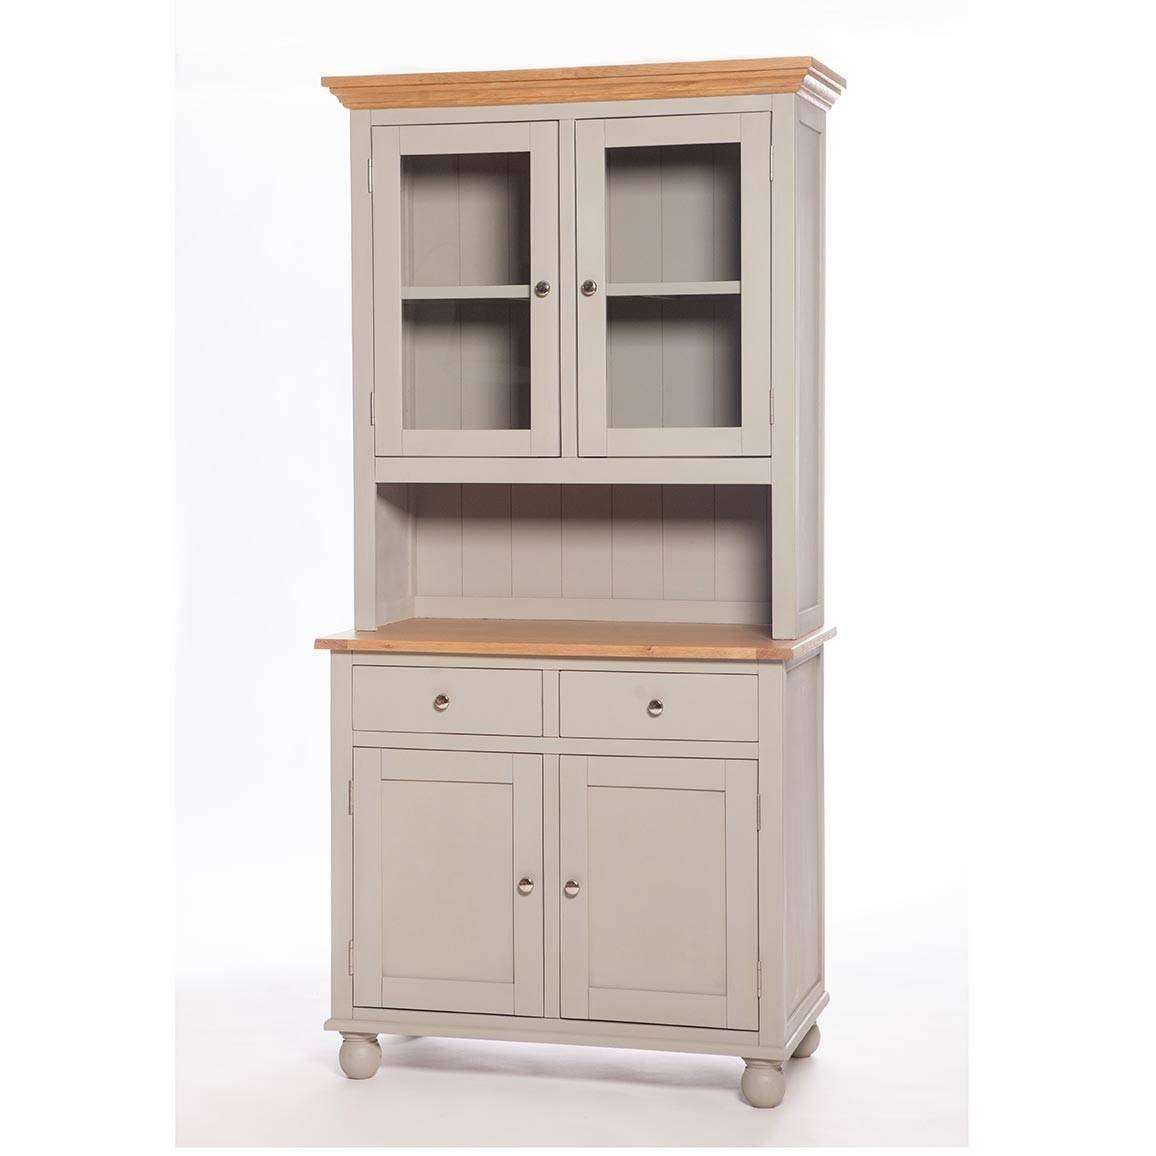 Somerset Small Kitchen Dresser | Woodlands Furniture Within Recent Narrow Kitchen Sideboards (#14 of 15)